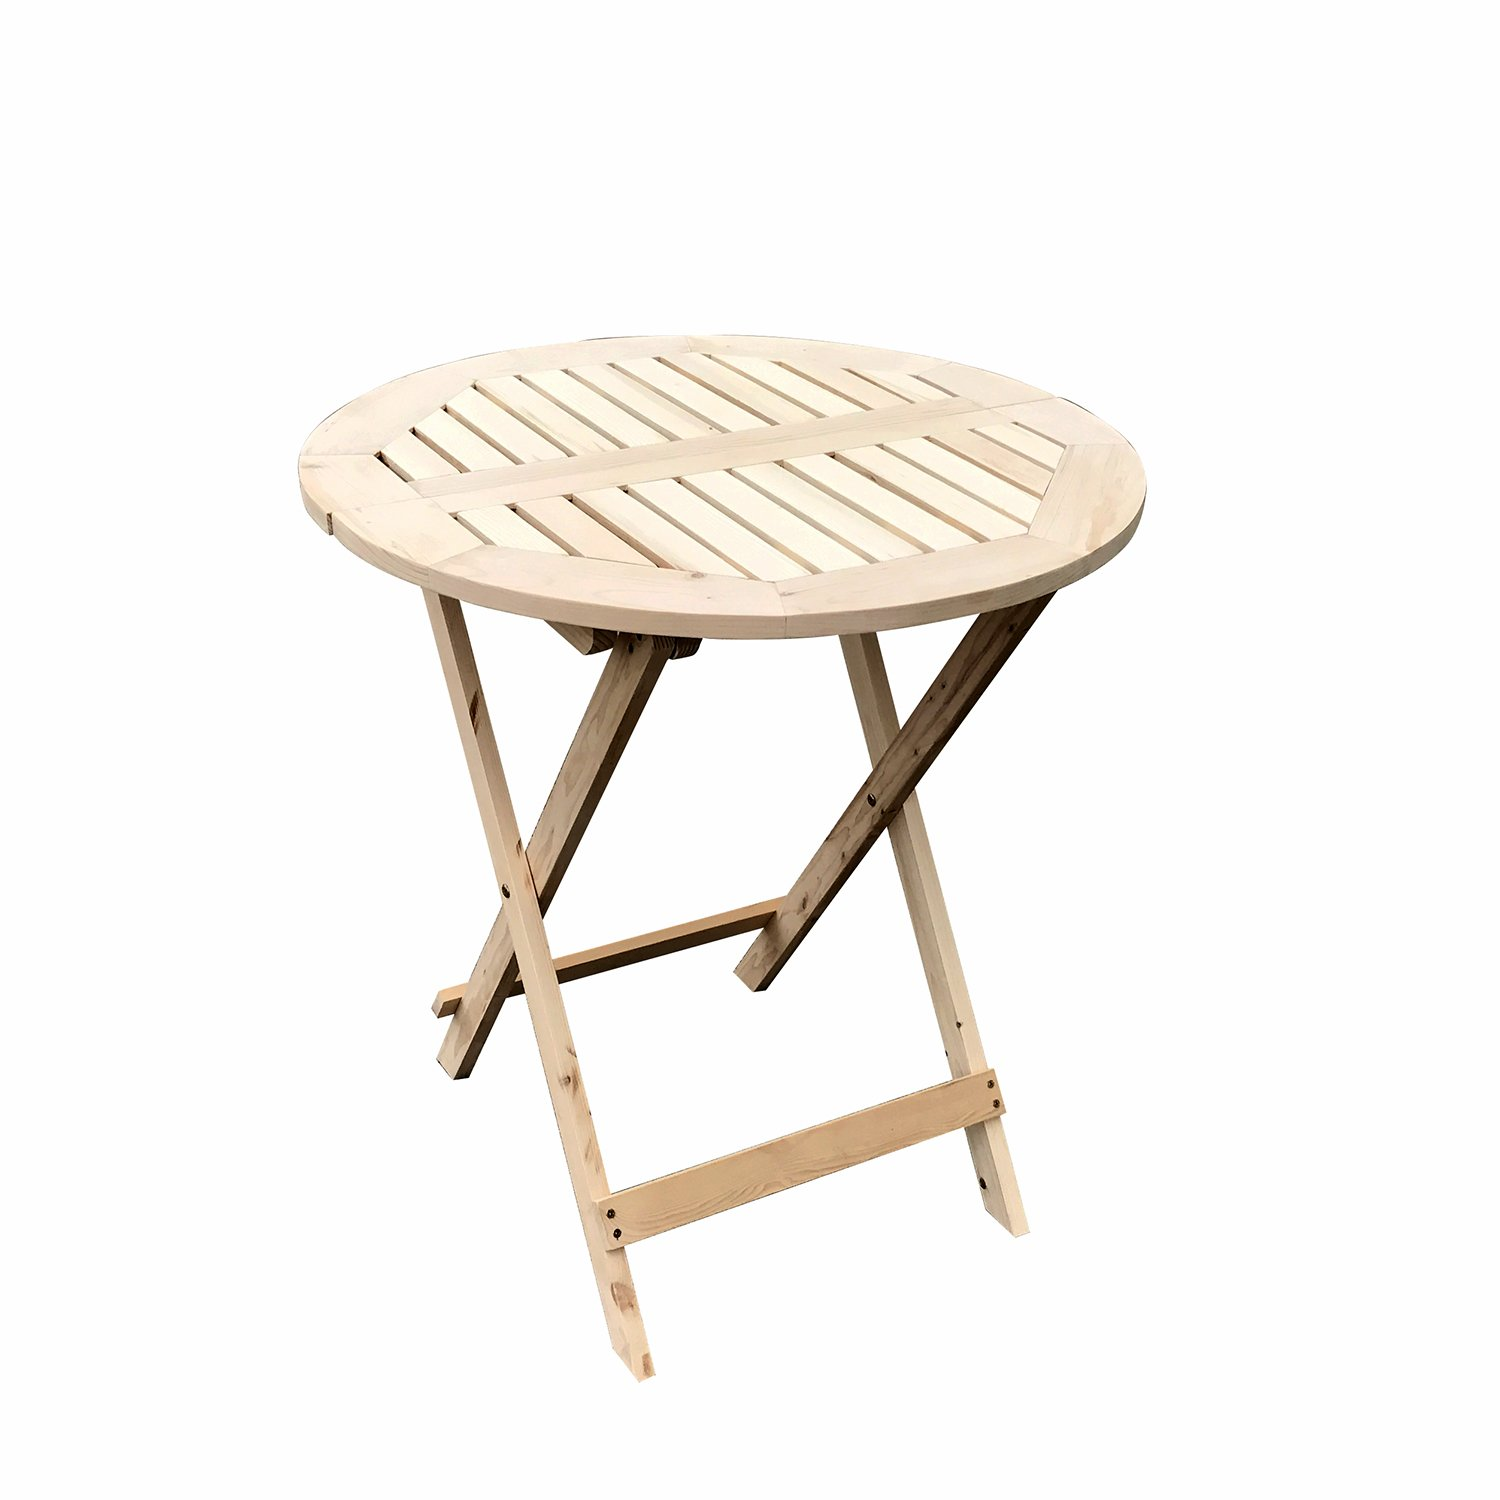 UHOM Wooden Round Folding Table Outdoor Patio Portable Side Table Furniture Set Natural Color